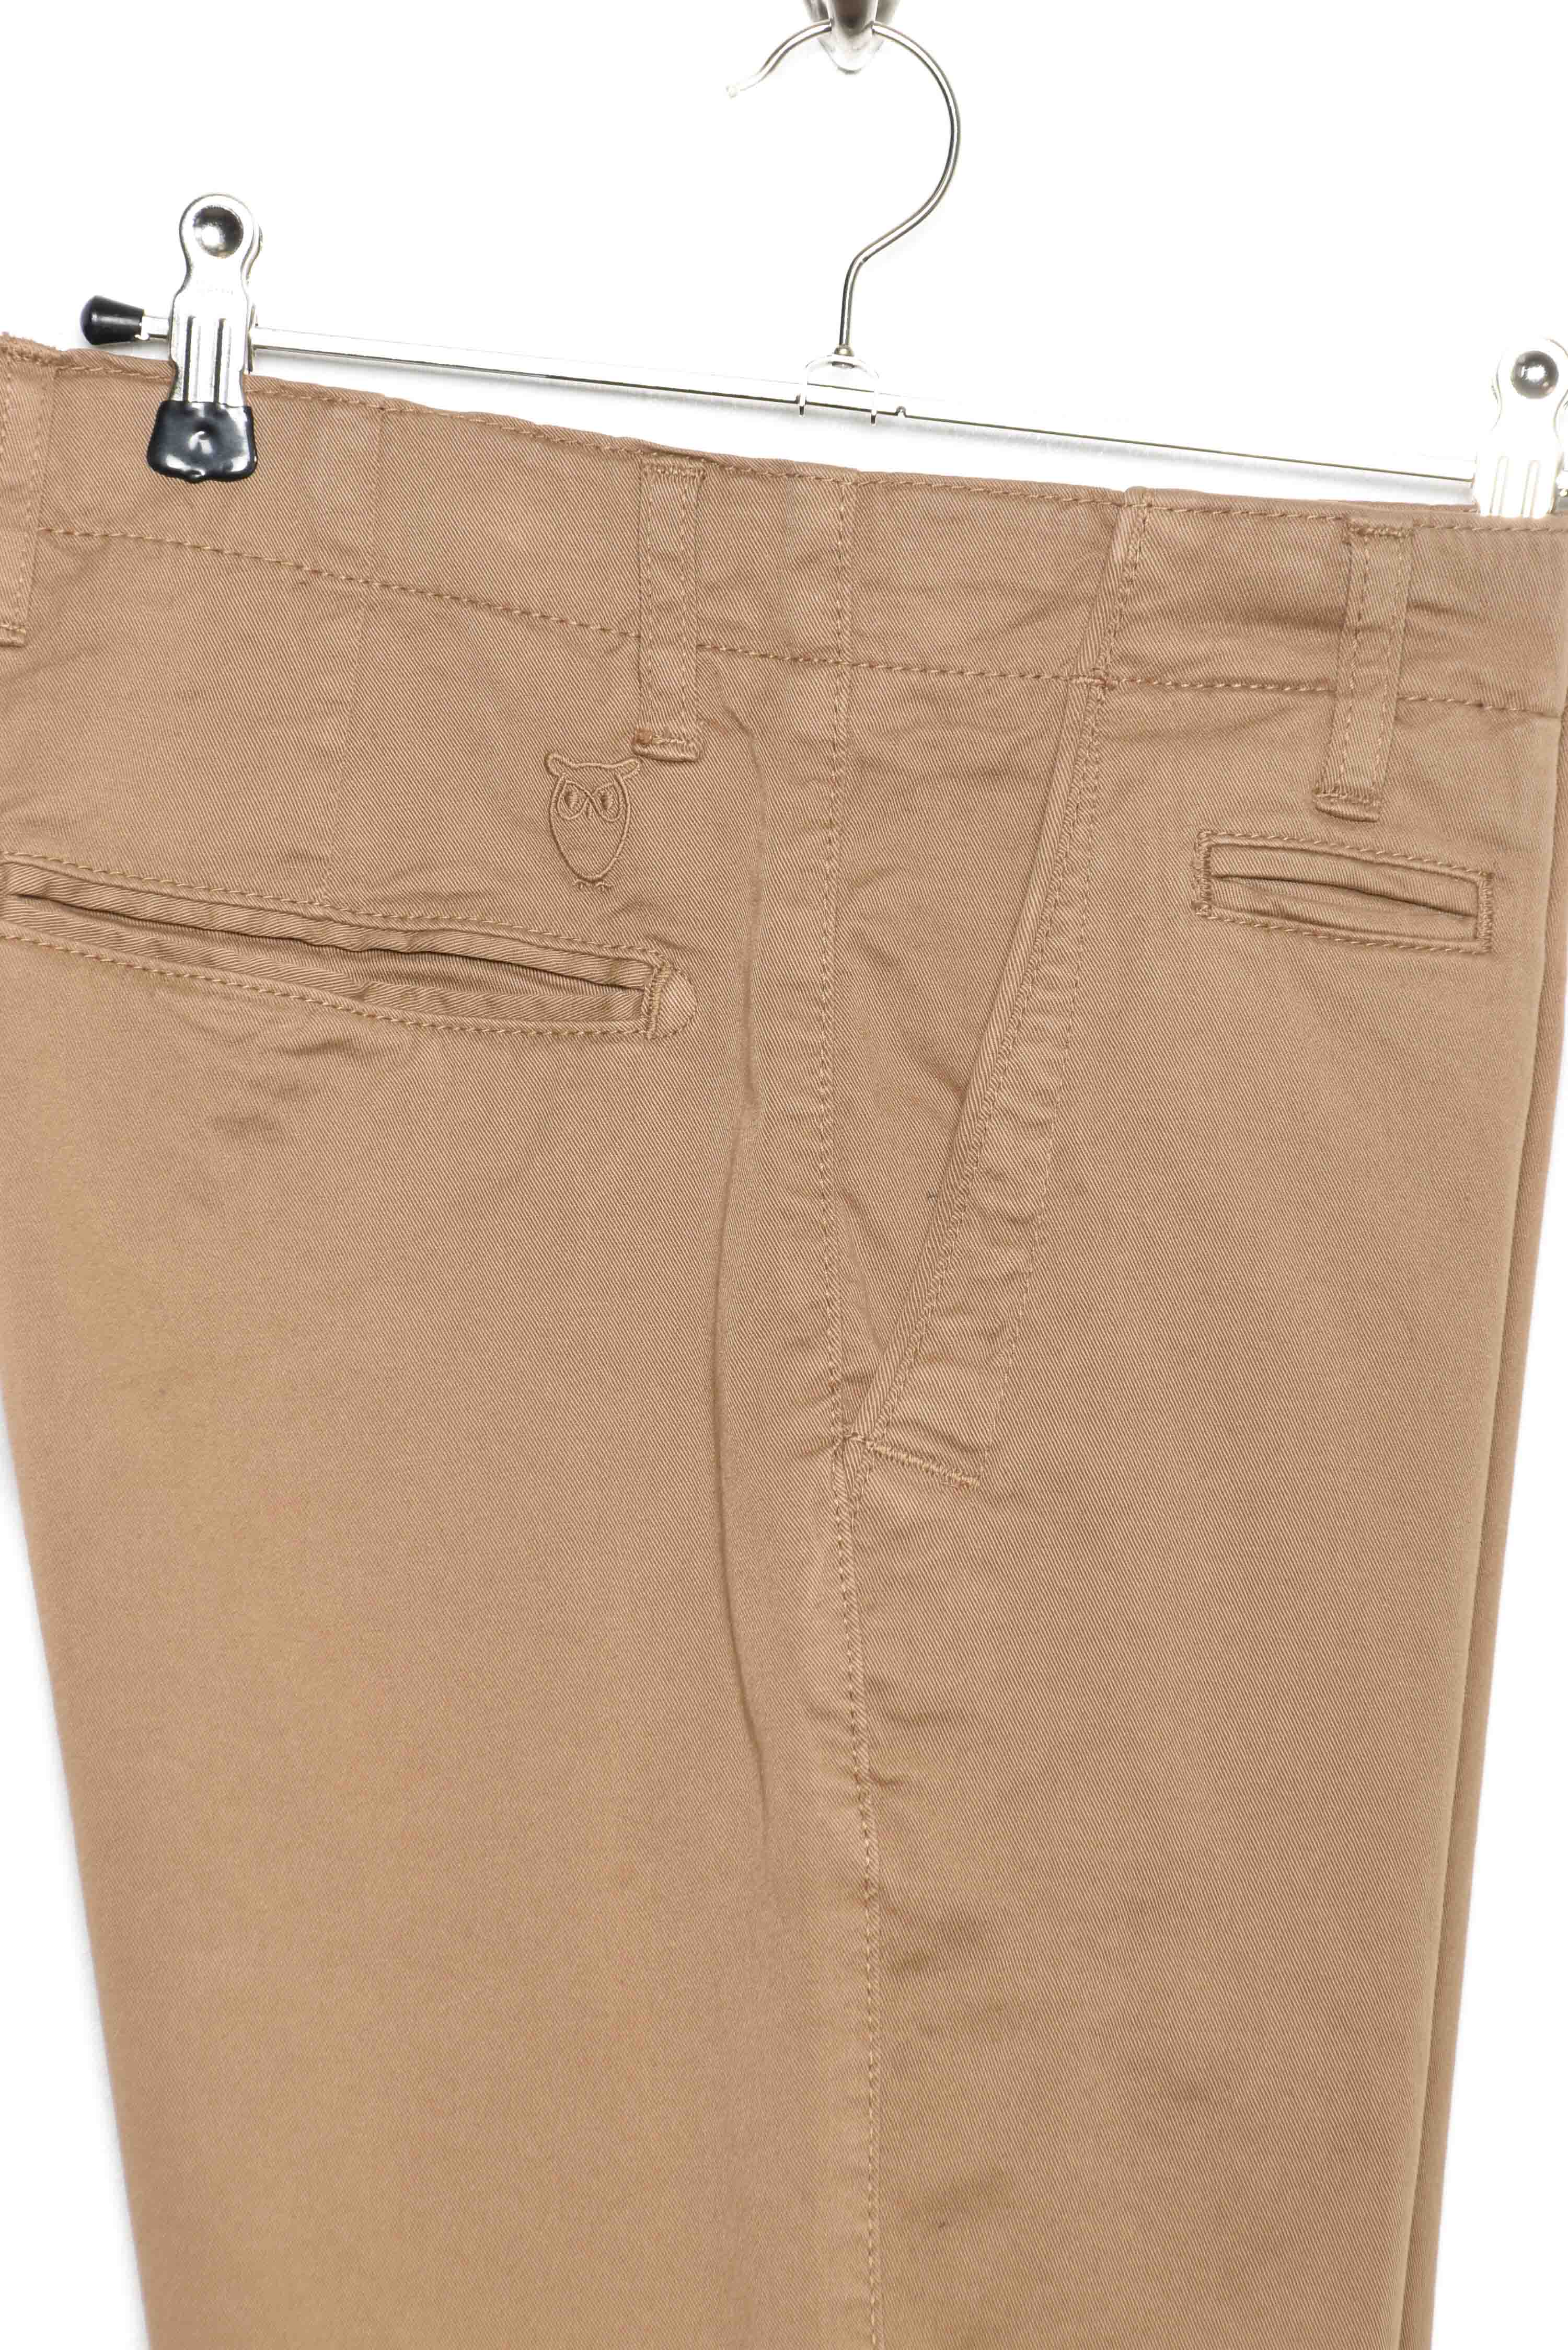 Knowledge Cotton Apparel Chuck Shorts 50182 tuffet